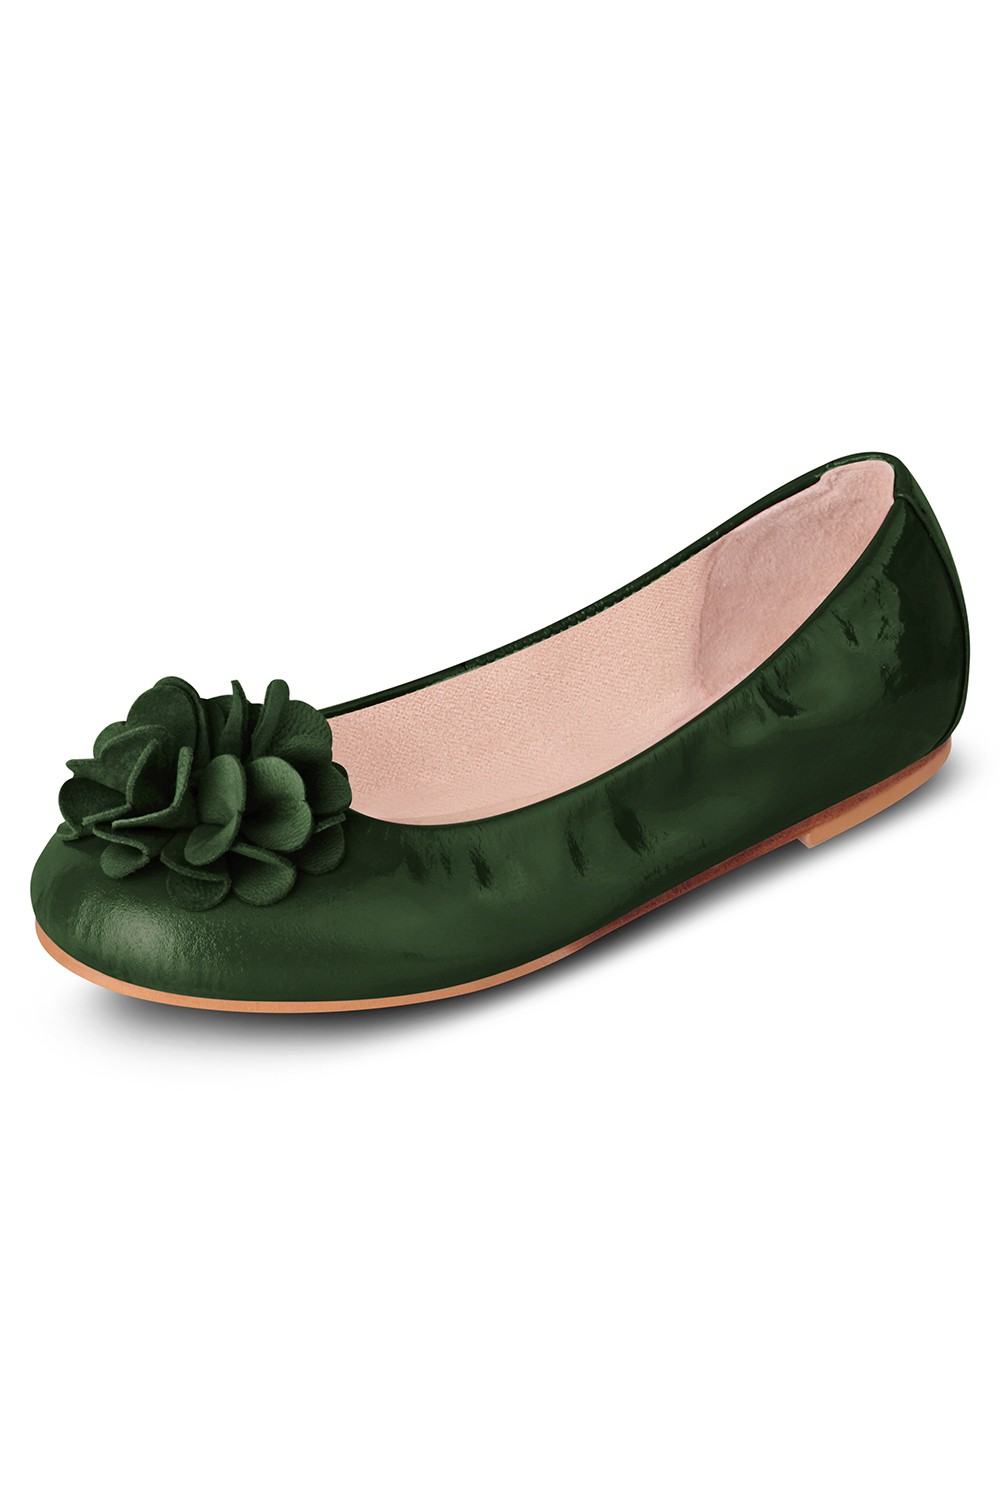 Florrie - Girls Girls Fashion Shoes